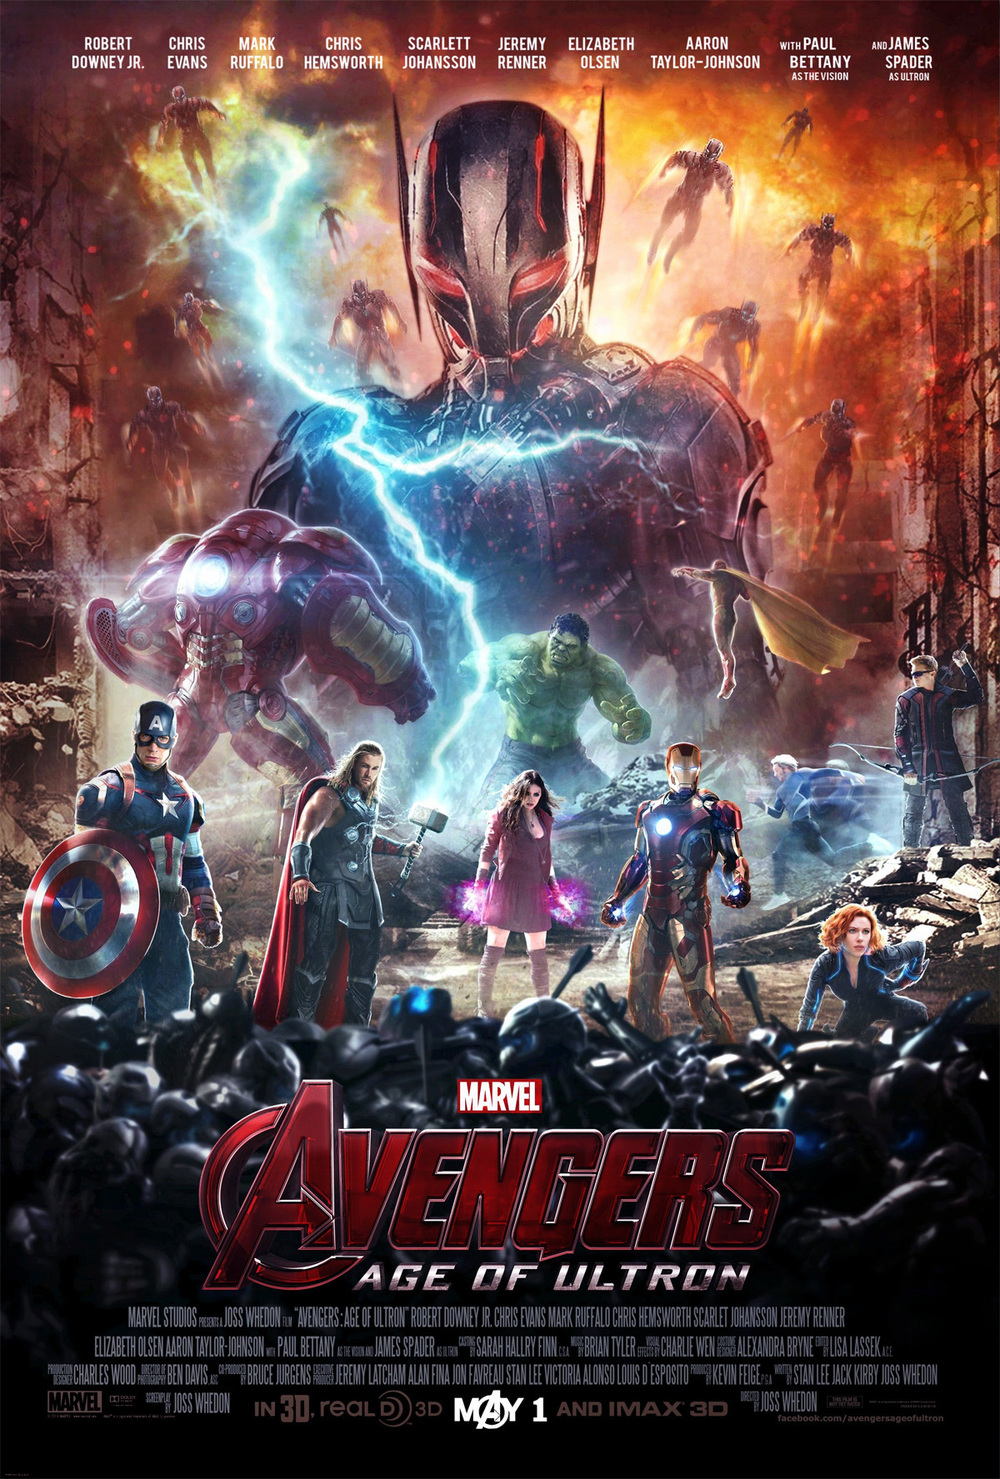 Avengers Release Date | Image